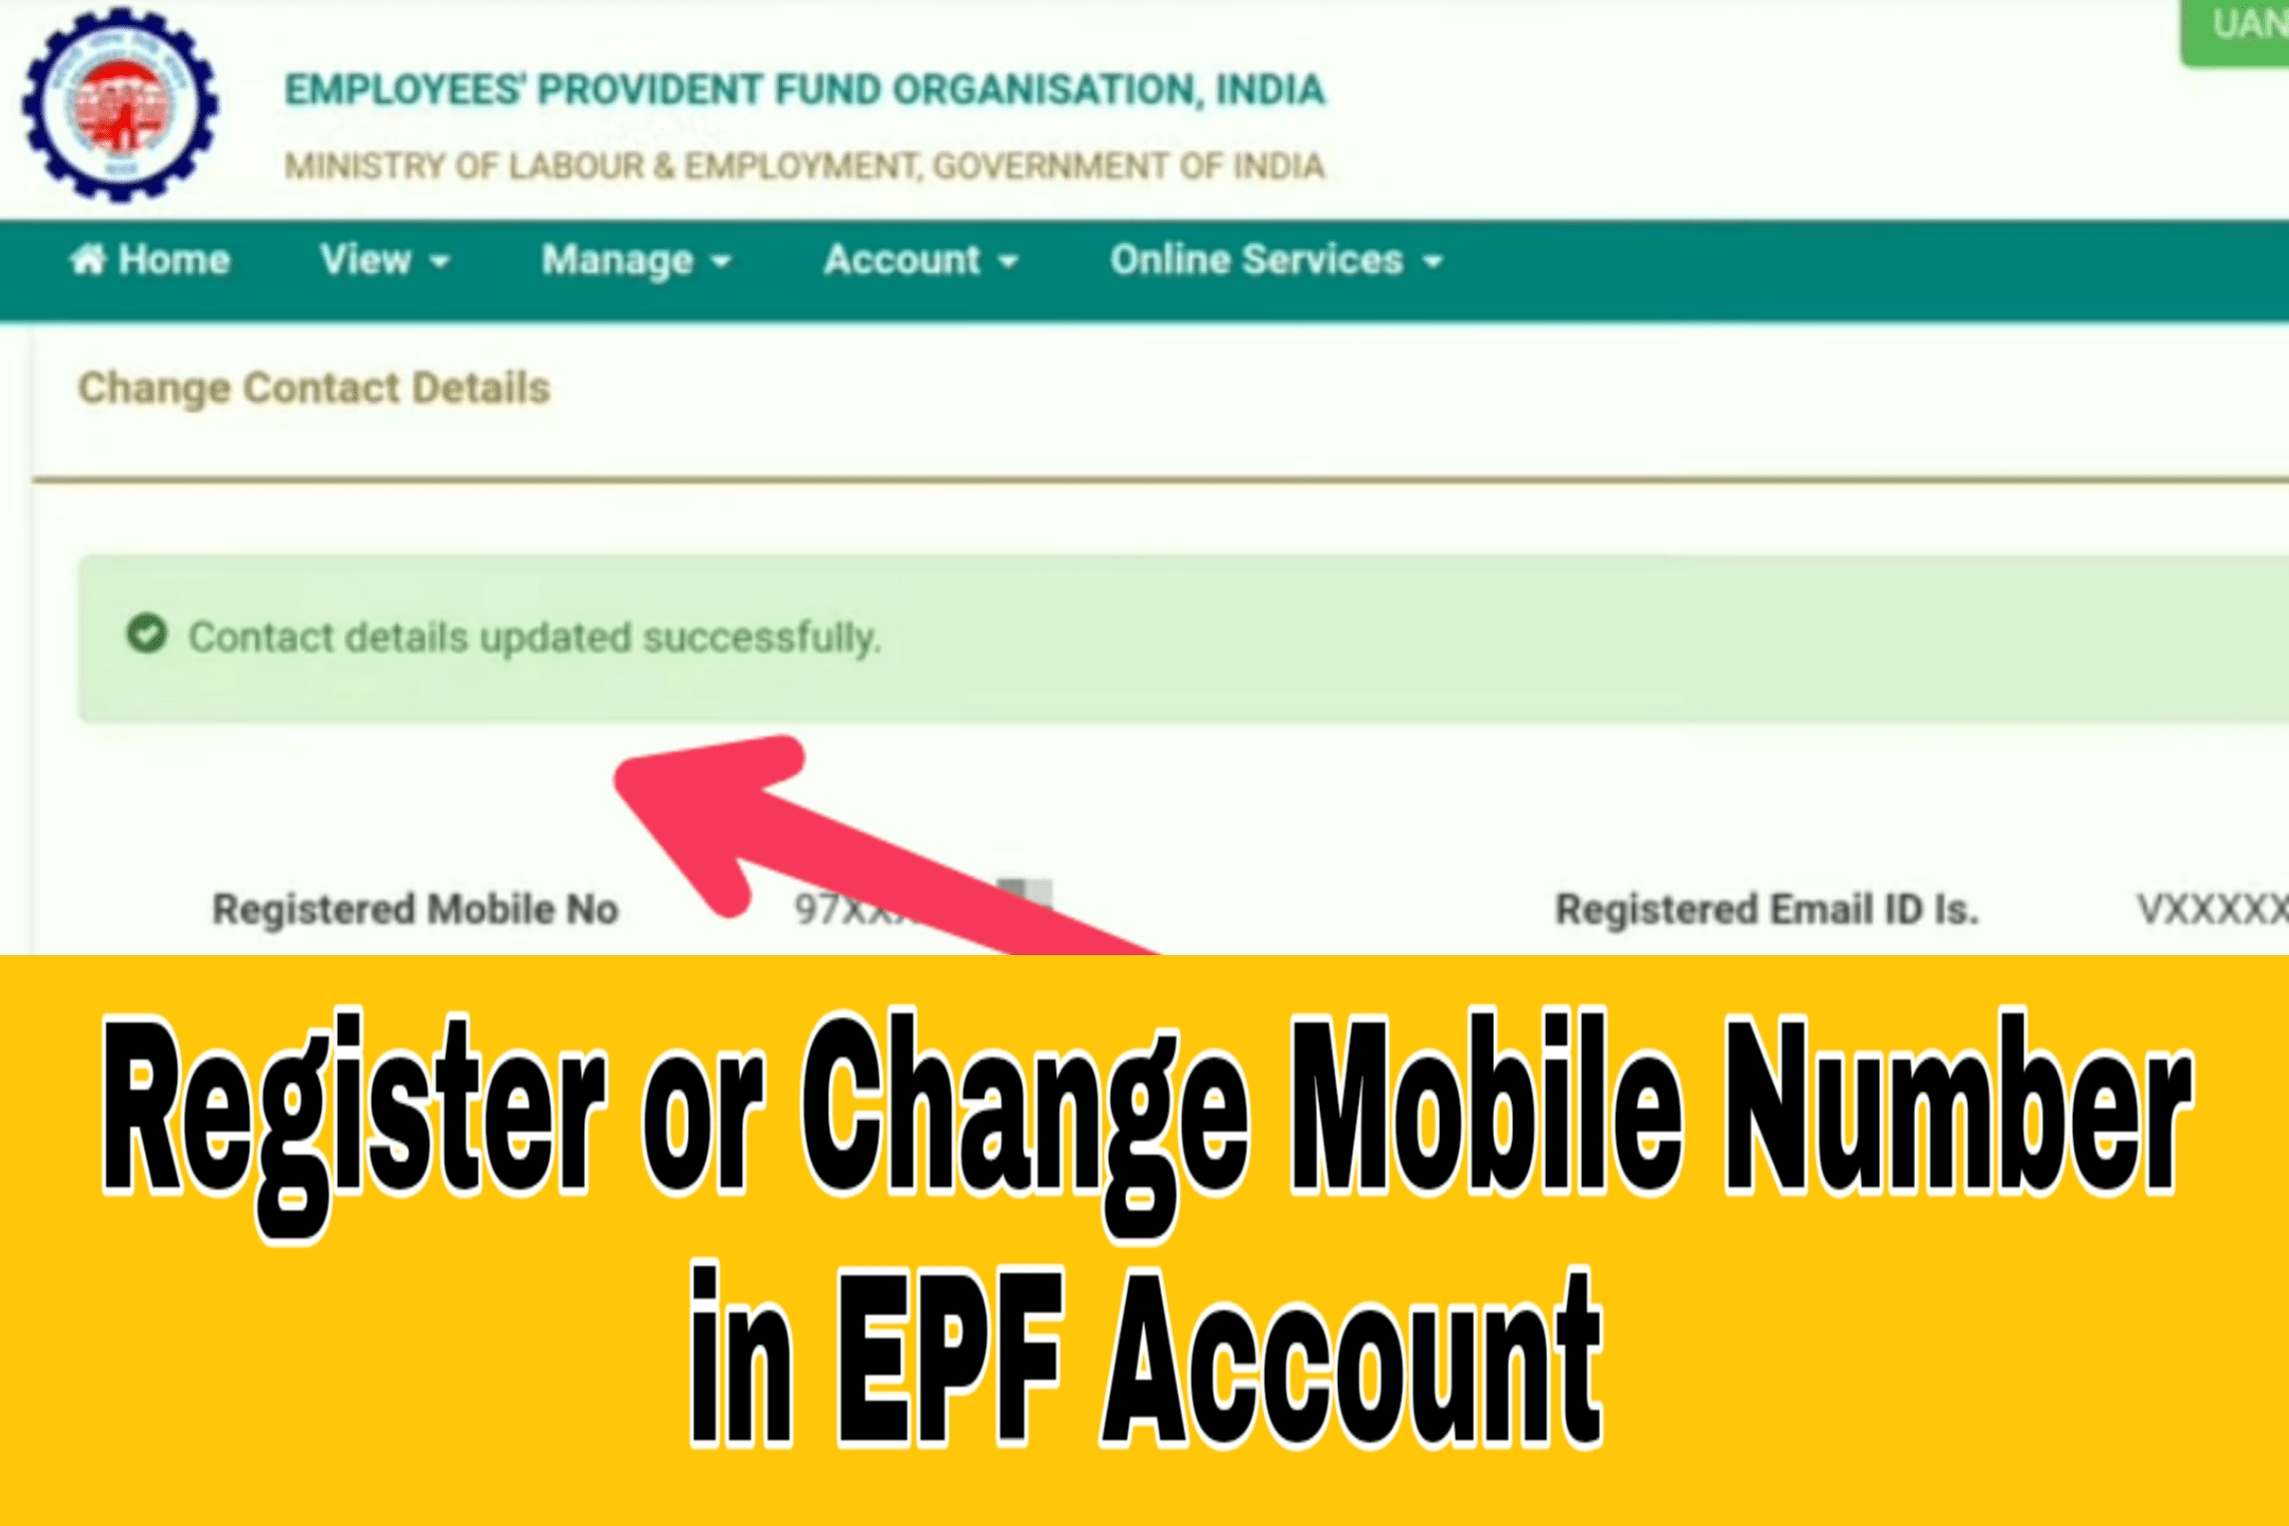 Register or Change Mobile Number in EPF Account